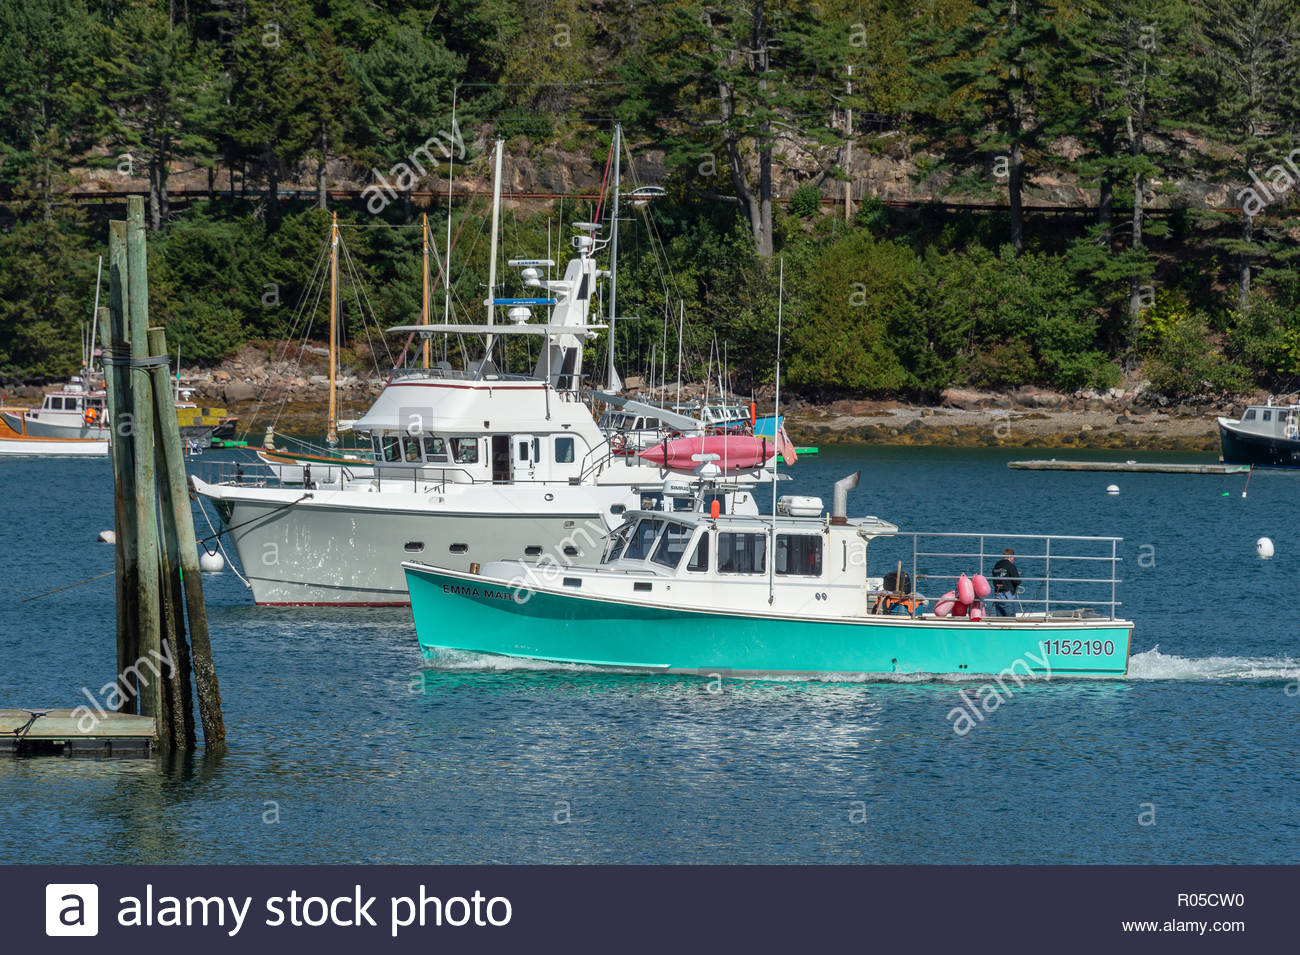 Northeast Harbor, Maine, USA - September 22, 2018: Lobster boat Emma Marie cruising past motor yacht in Northeast Harbor on last day of summer - Stock Image